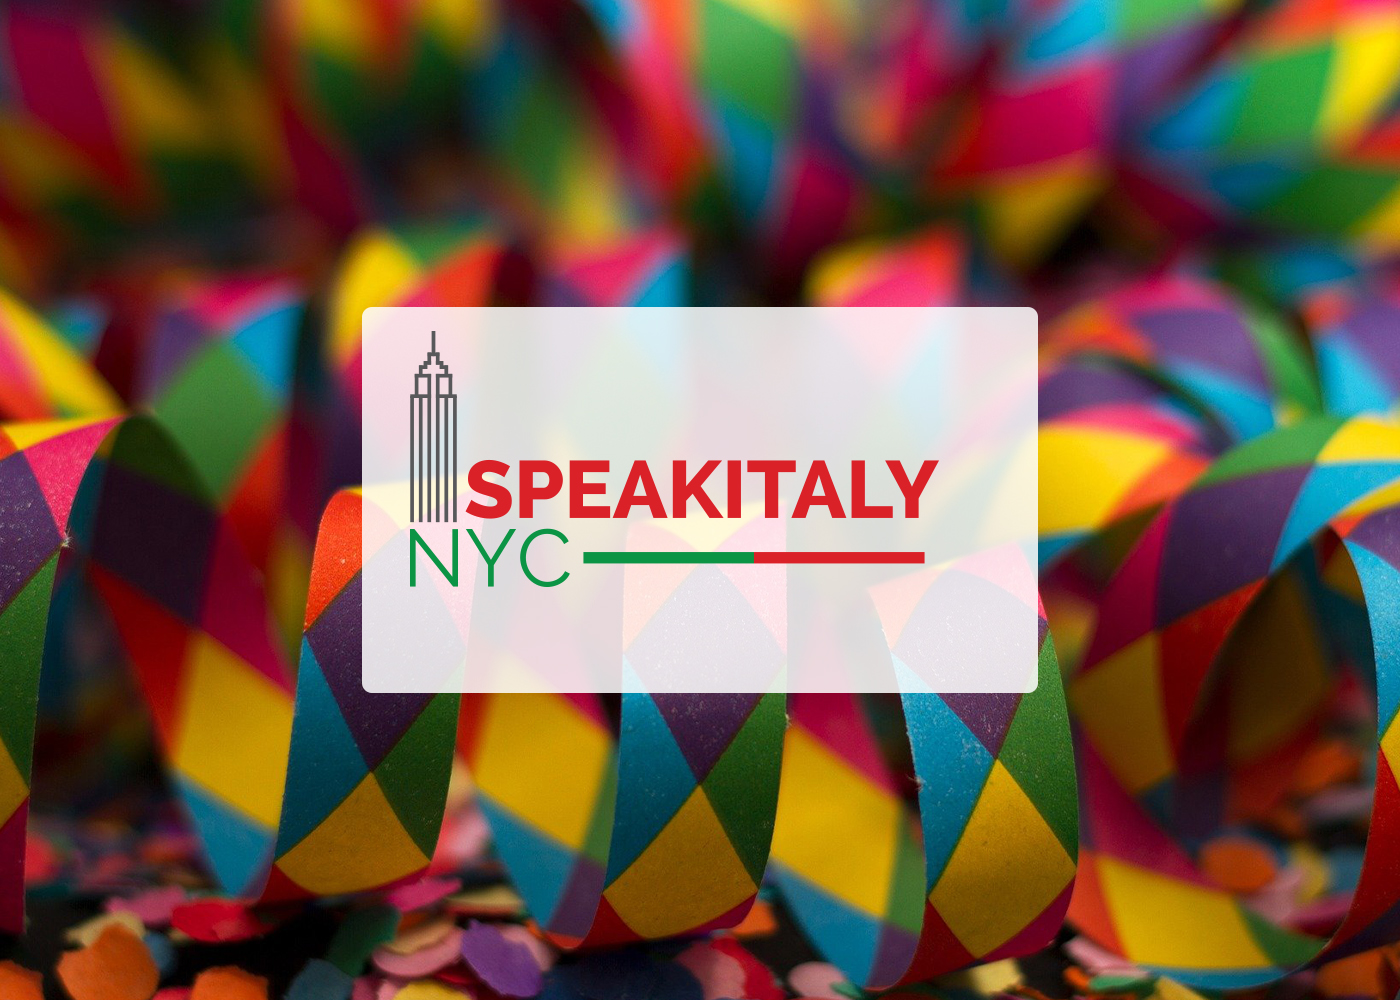 IN PERSON Decoupage Workshop at Speakitaly NYC